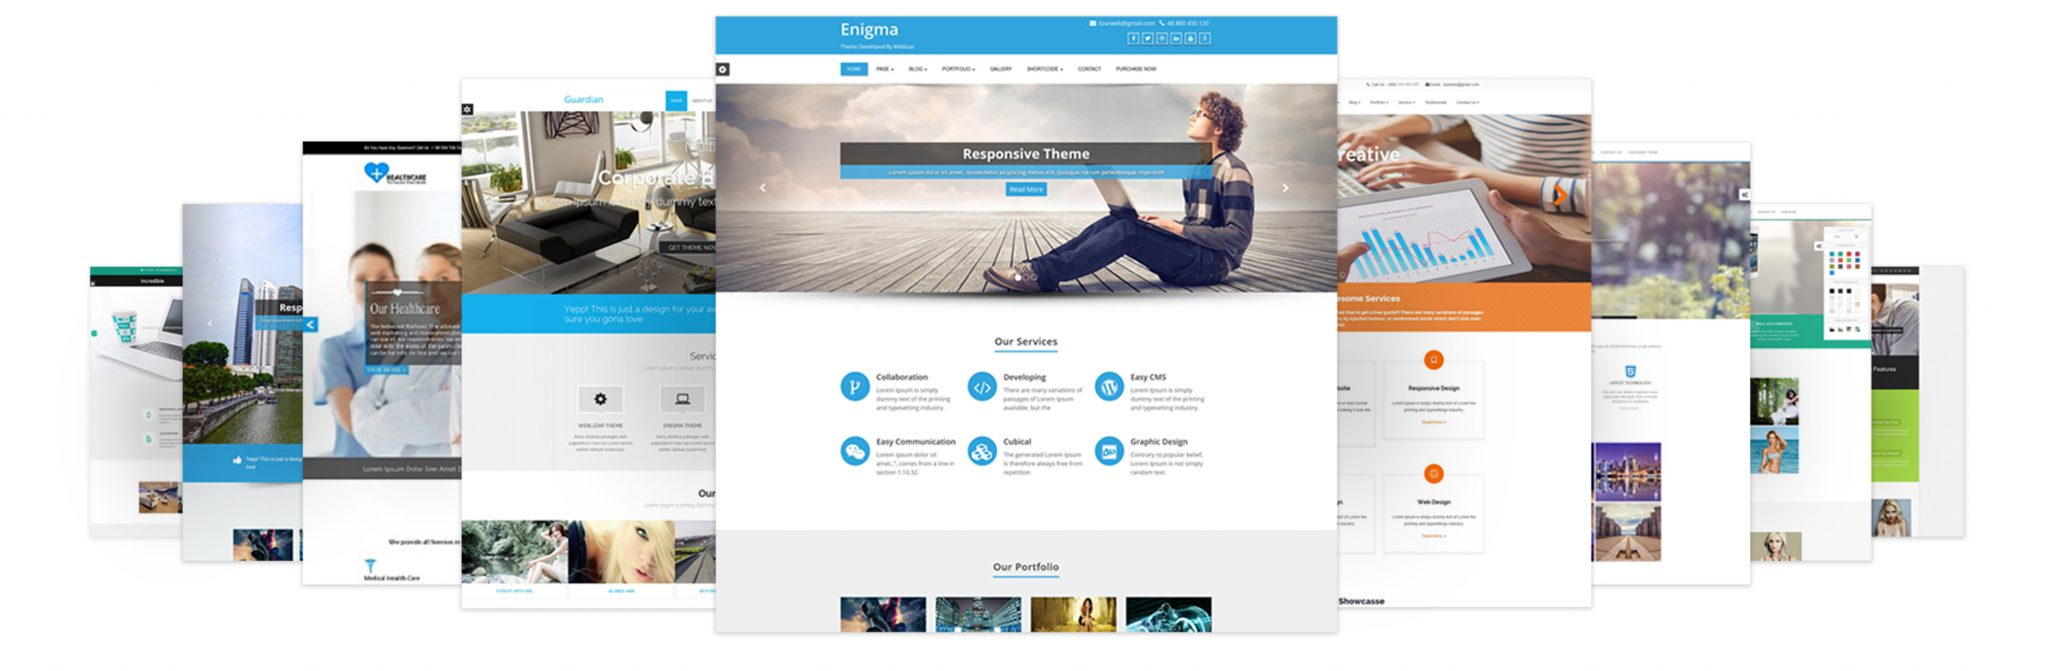 Installing Weblizar WordPress Theme